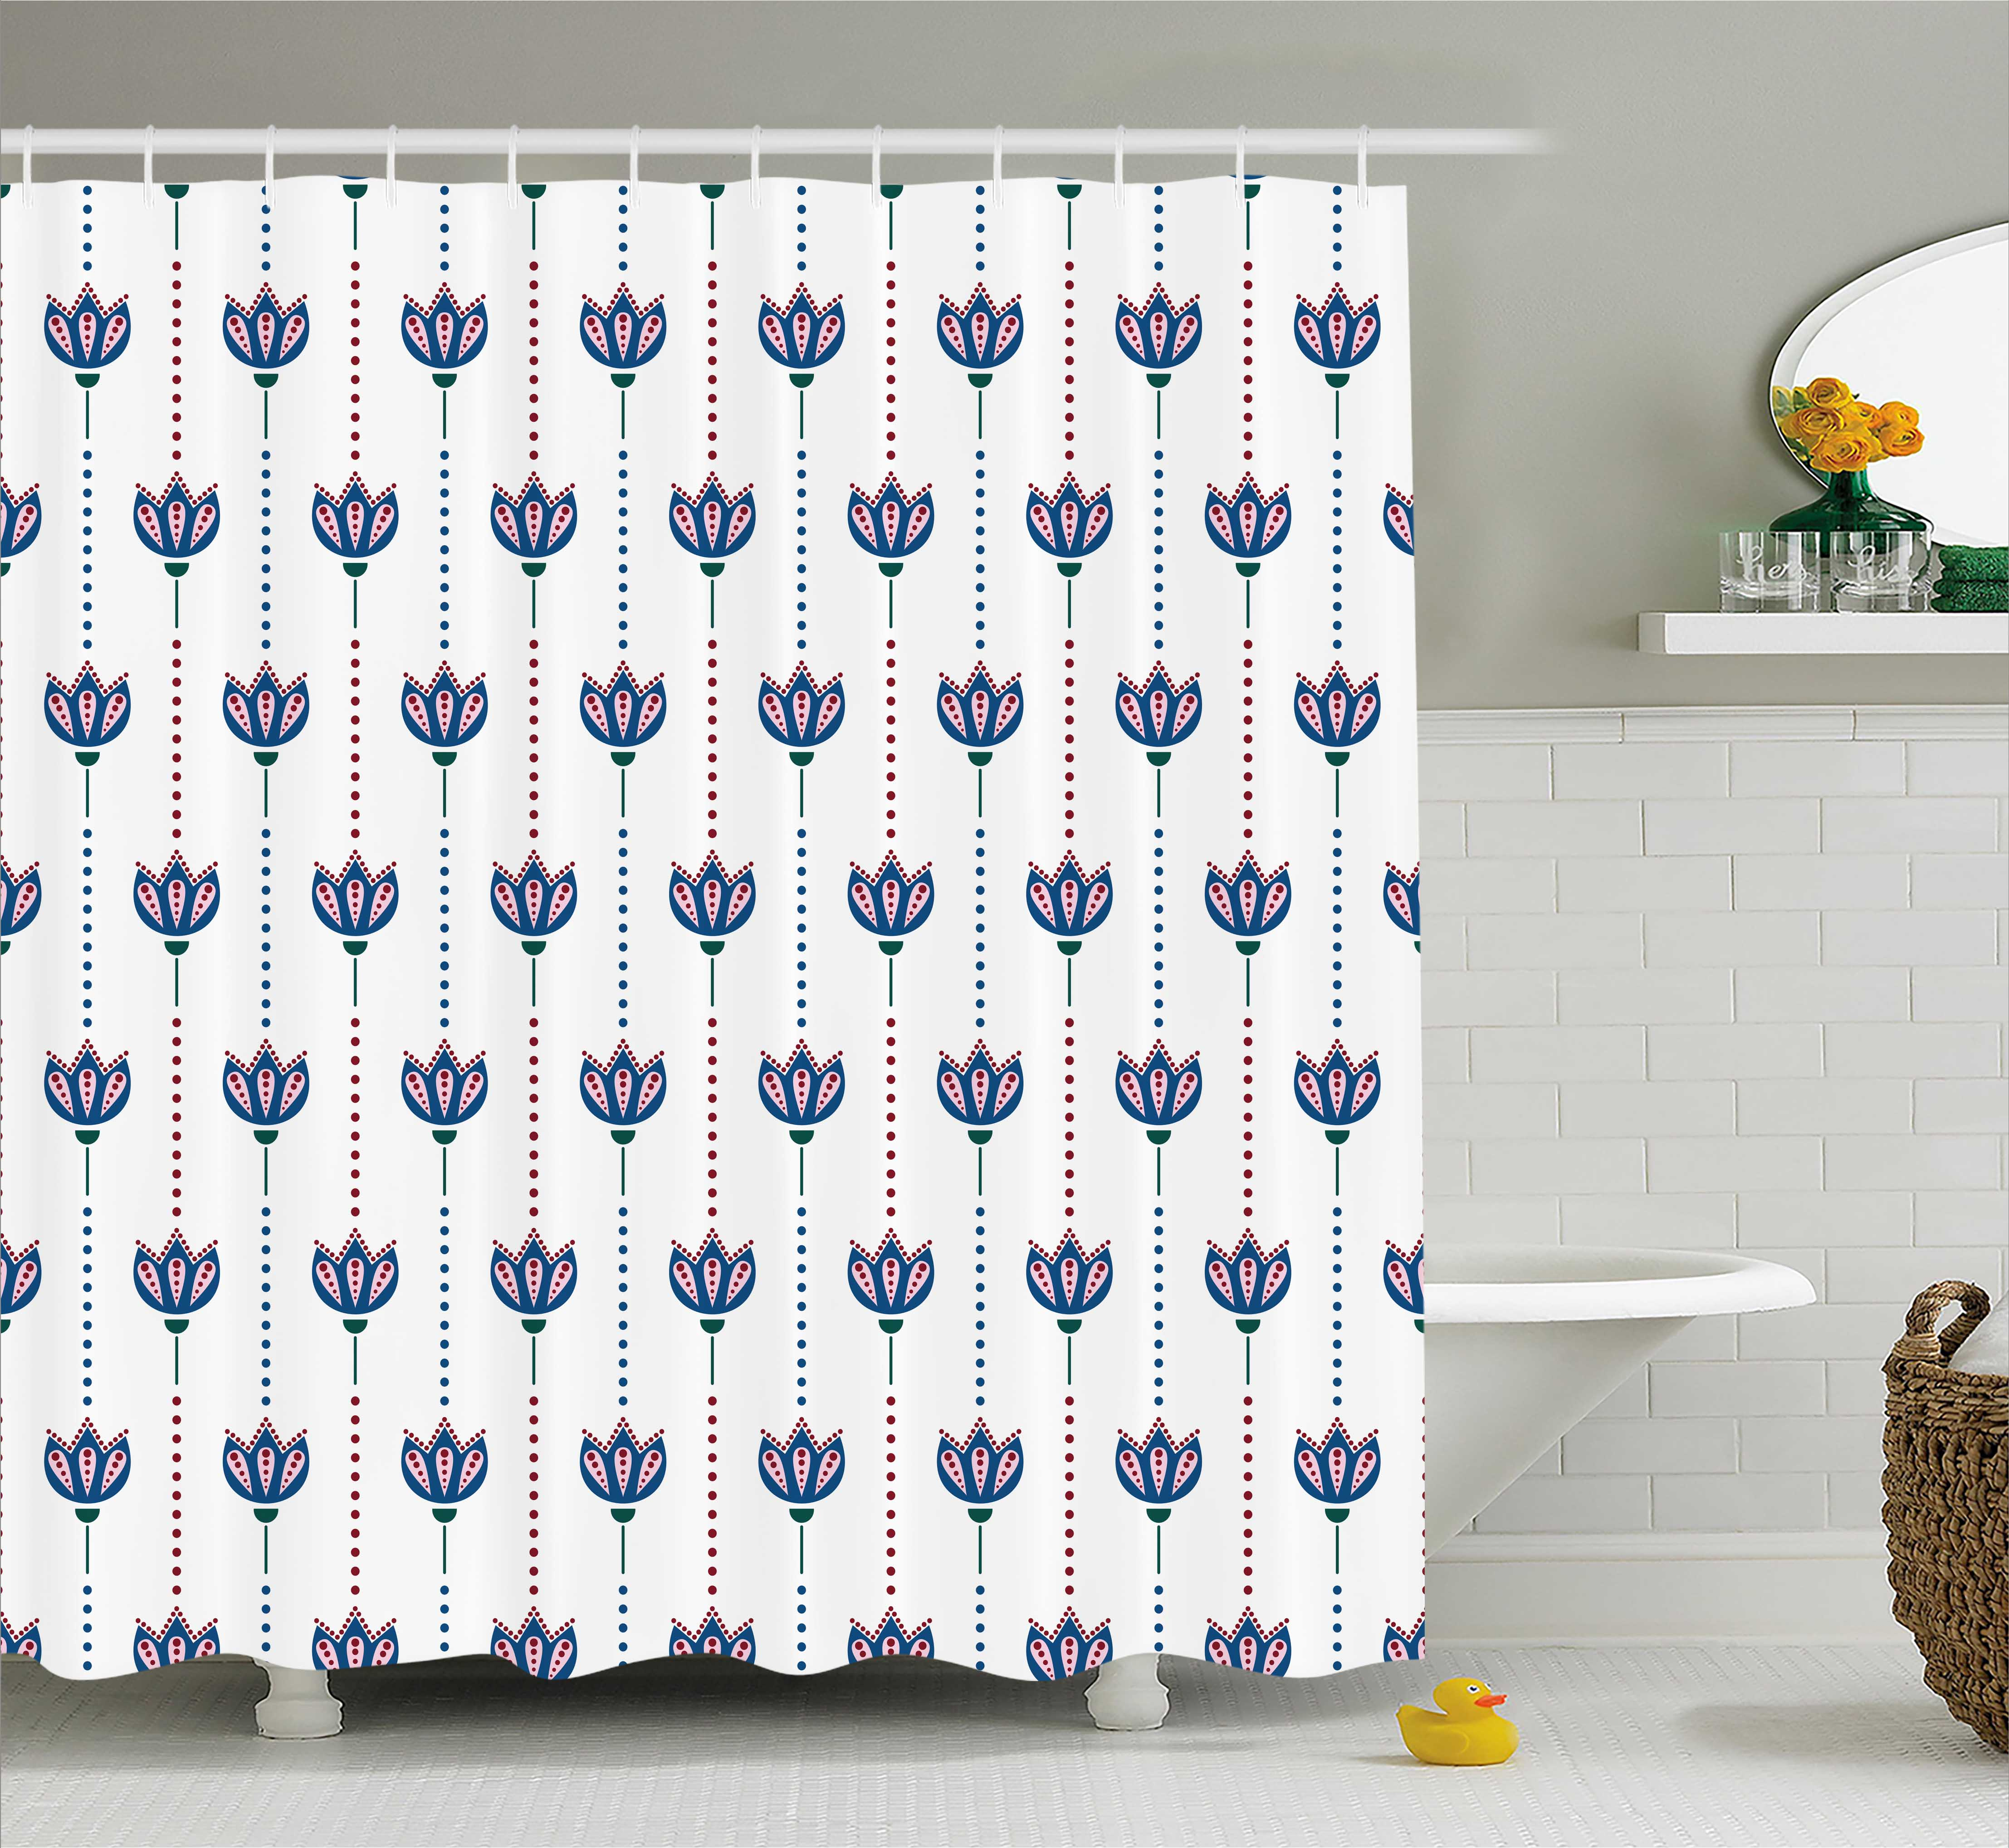 Indian Shower Curtain, Ottoman Tiles Inspired Bohem Ethnic Tulip Flowers and Polka Dots Image, Fabric Bathroom Set with Hooks, 69W X 84L Inches Extra Long, Red Navy Blue and White, by Ambesonne